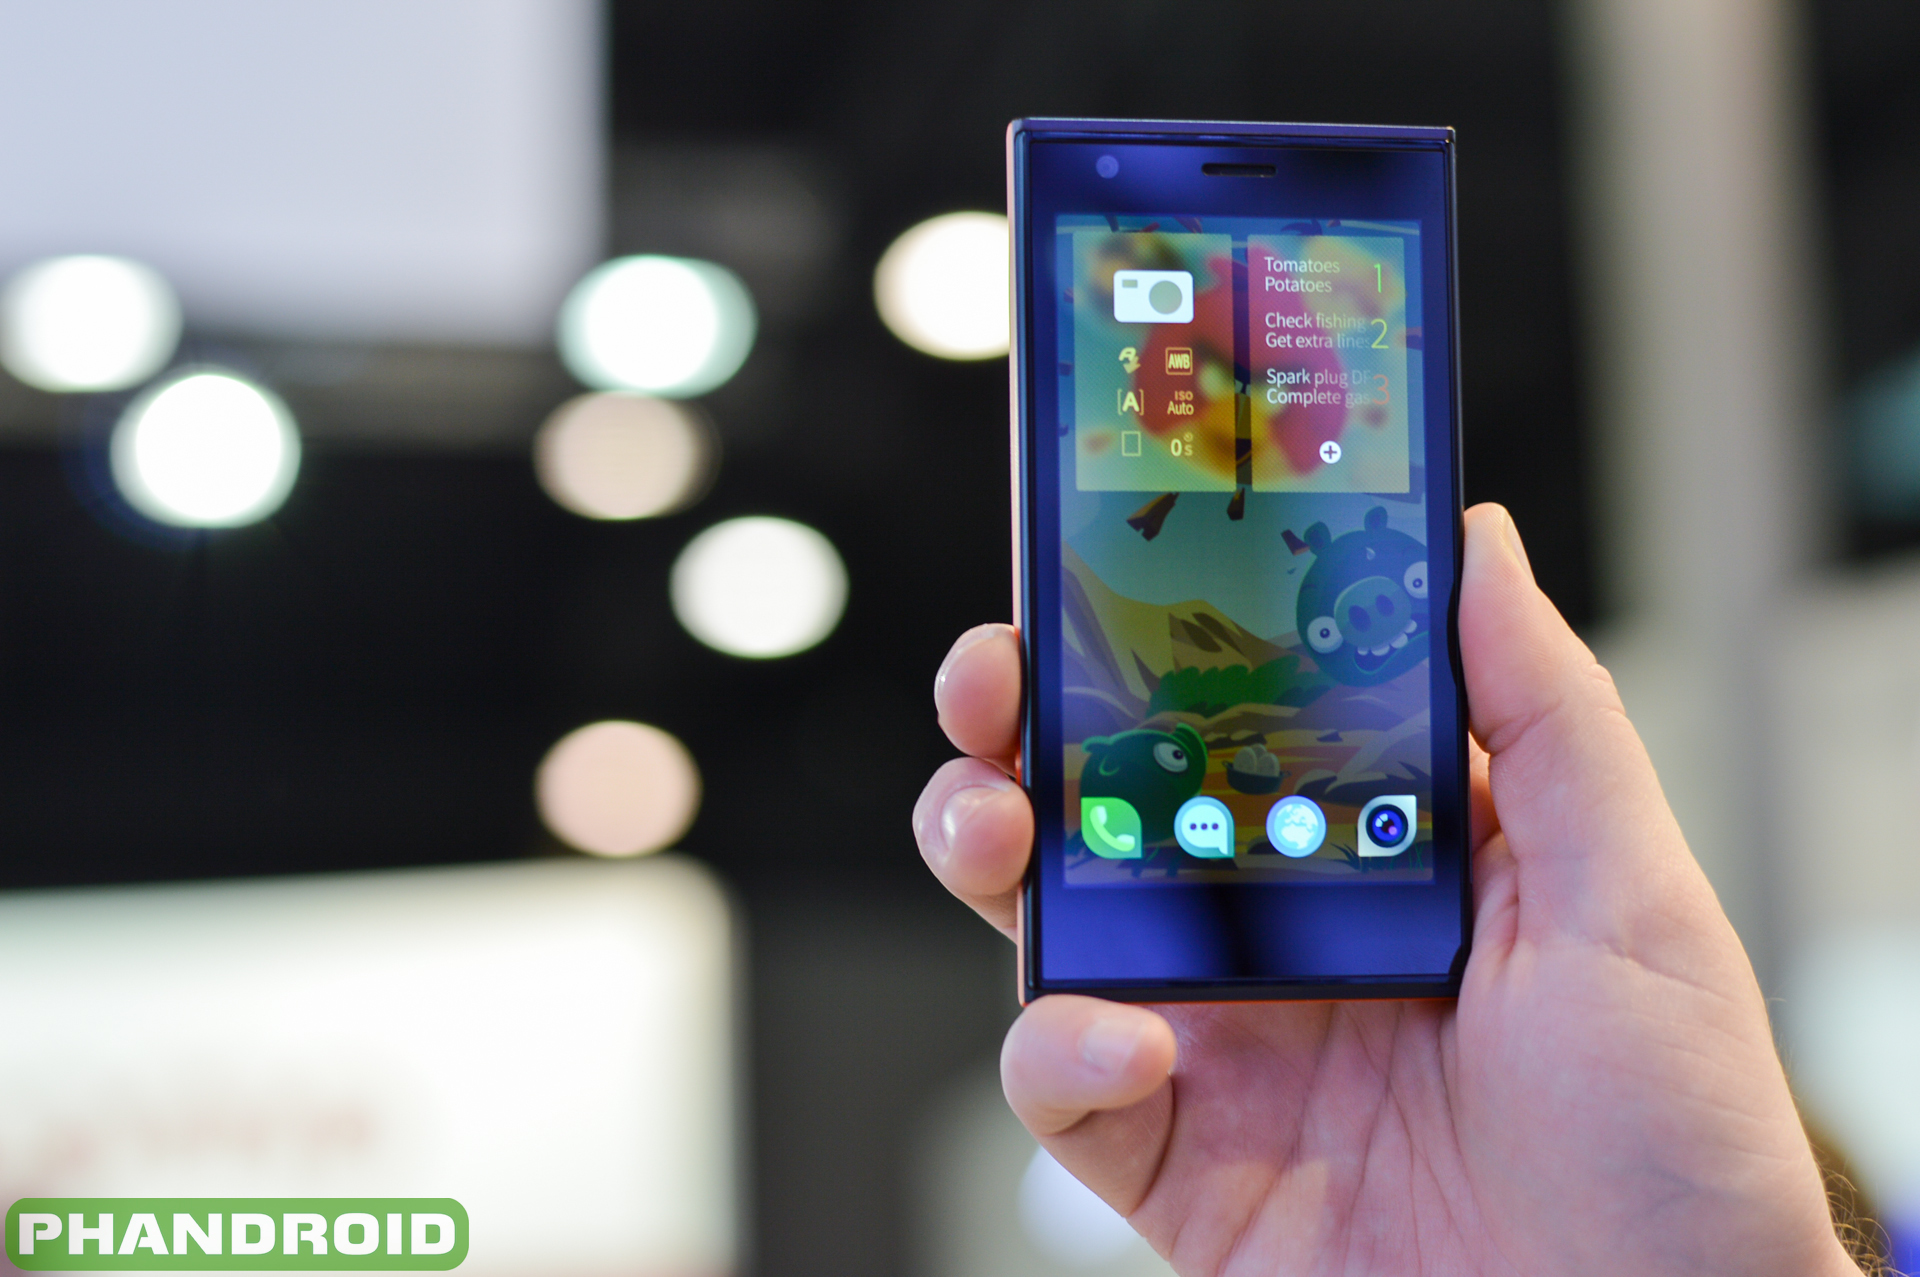 Hands-on video with the Jolla Phone and SailFish OS